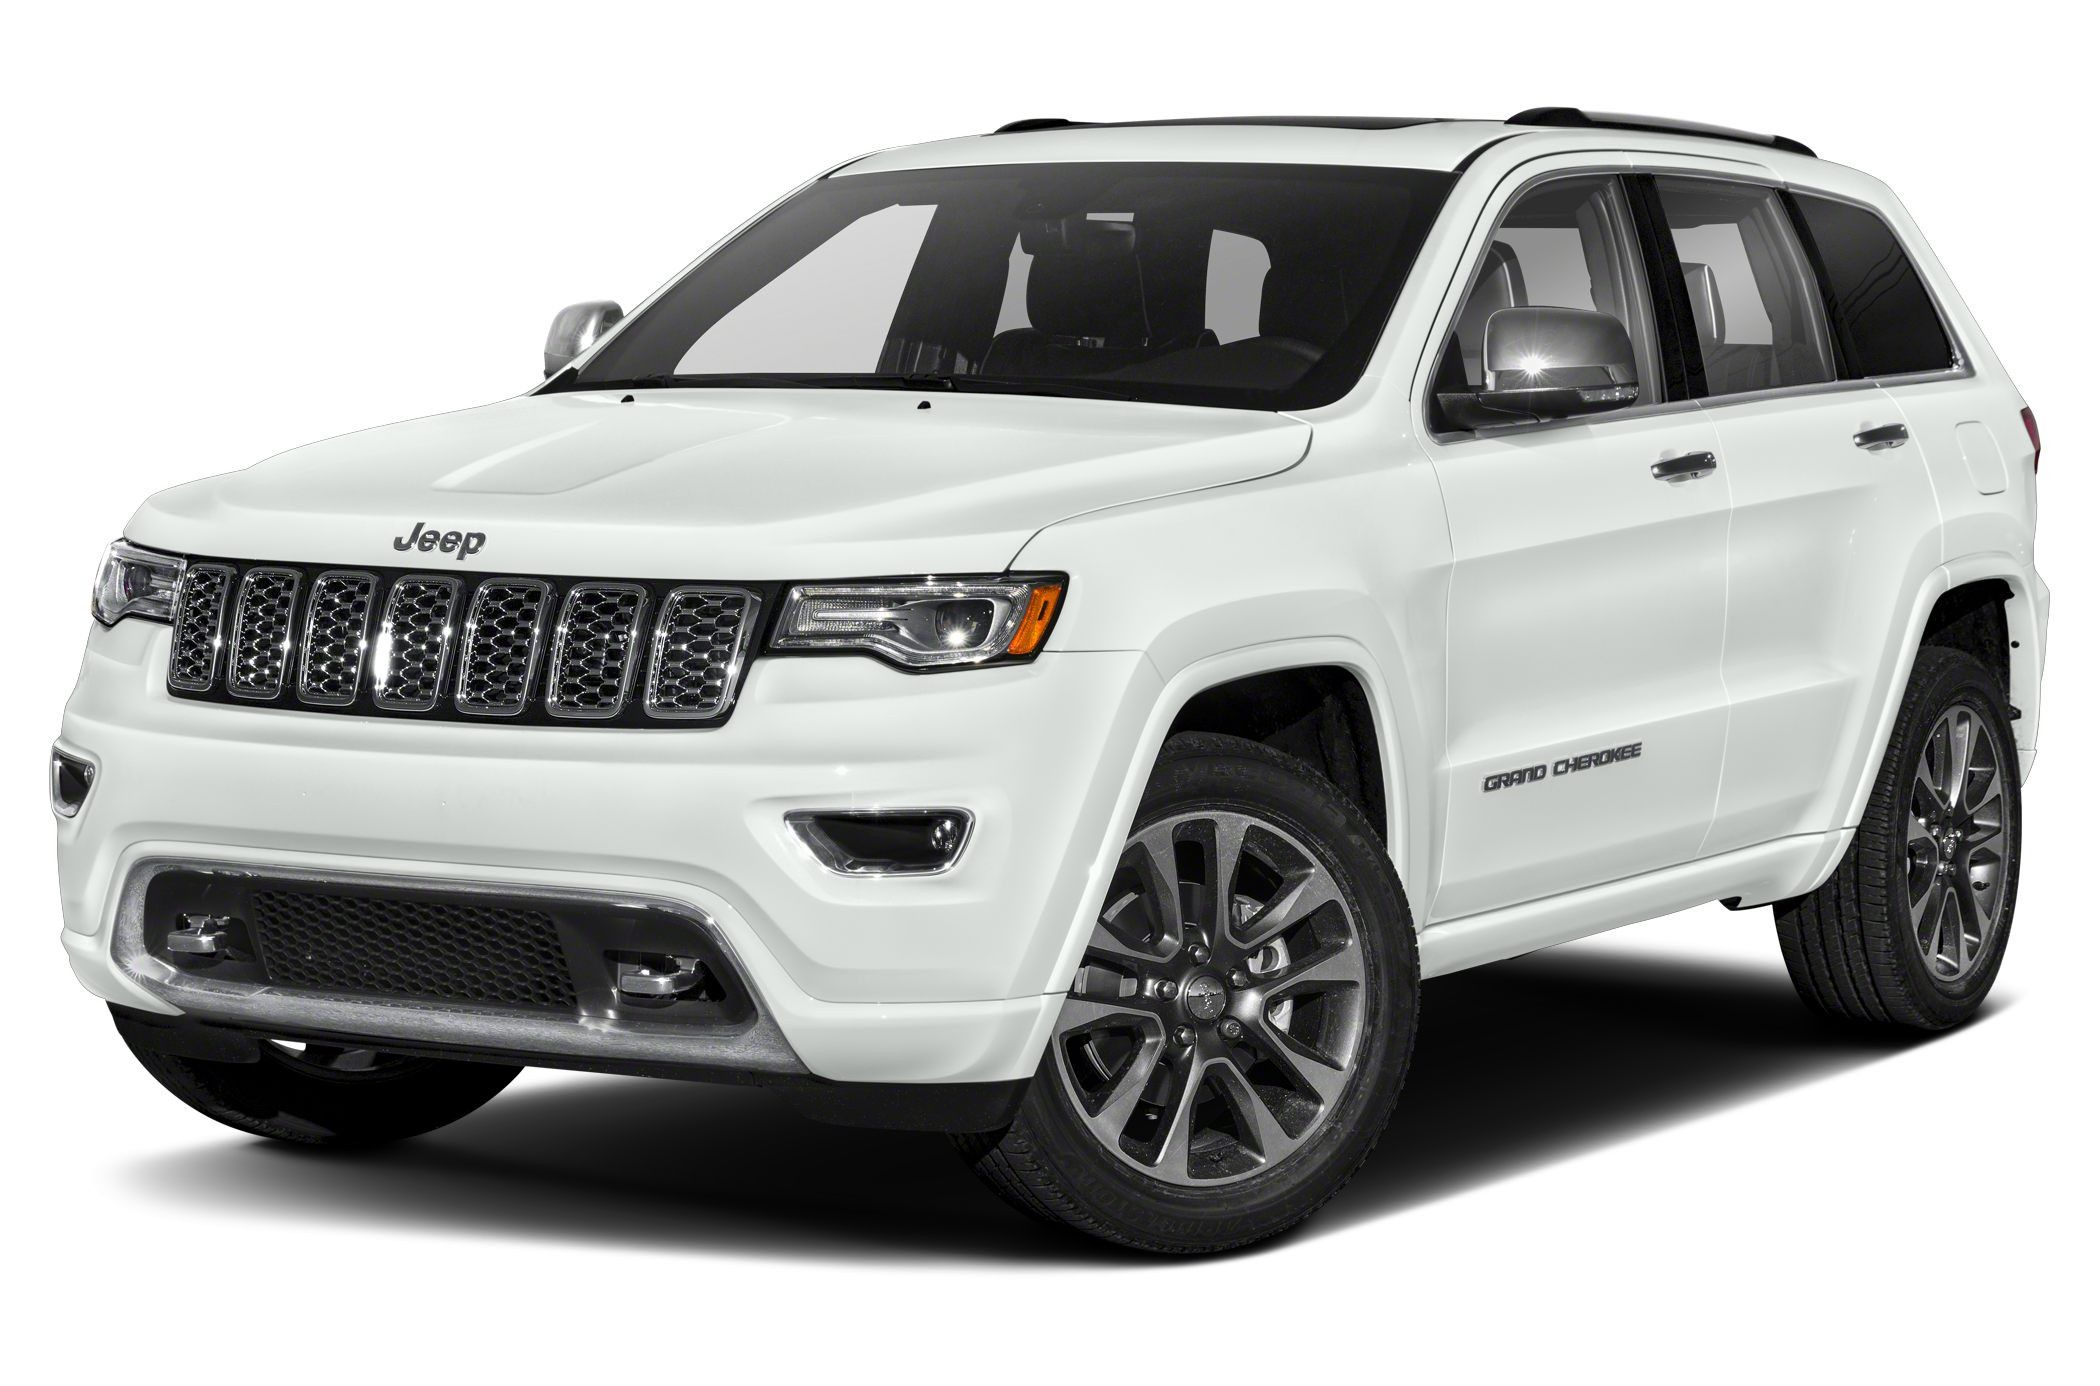 2020 Jeep Grand Cherokee Overland First Drive Check More At Https